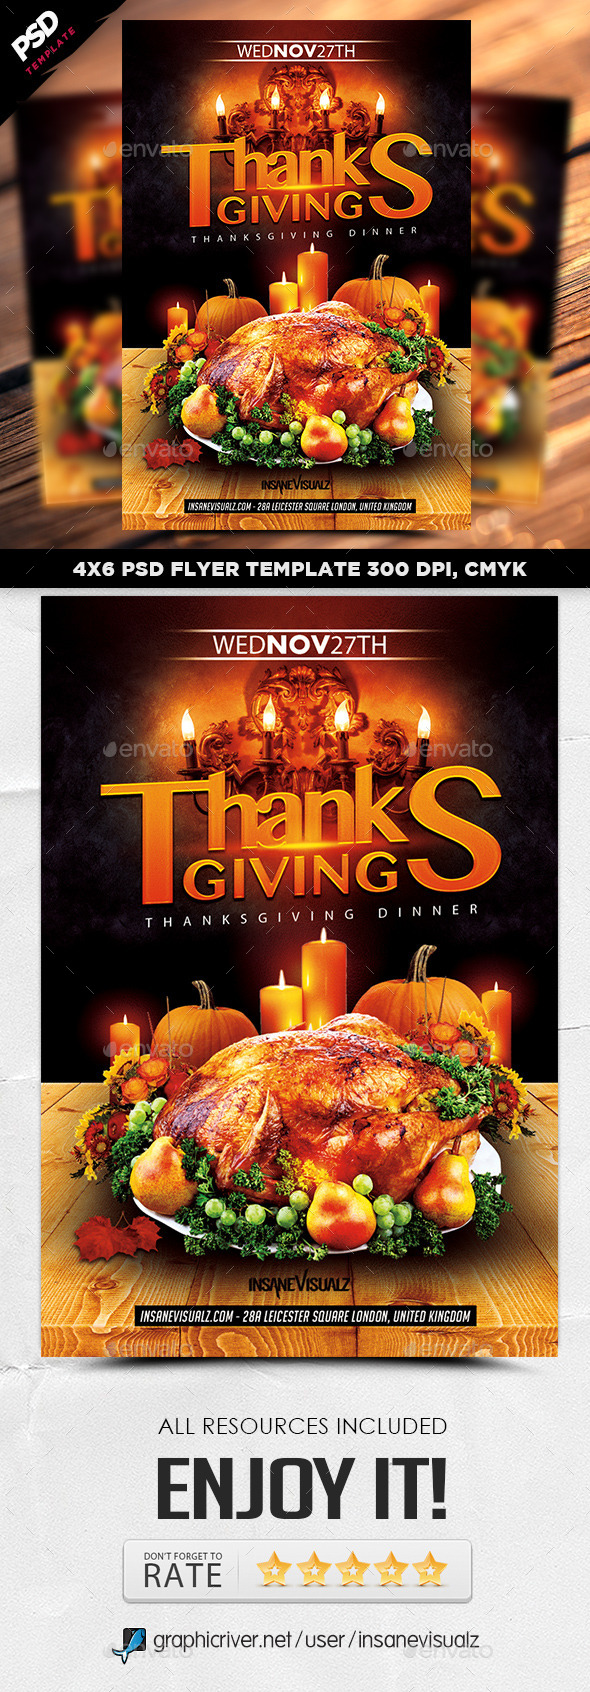 GraphicRiver Thanksgiving Dinner Flyer 9295801